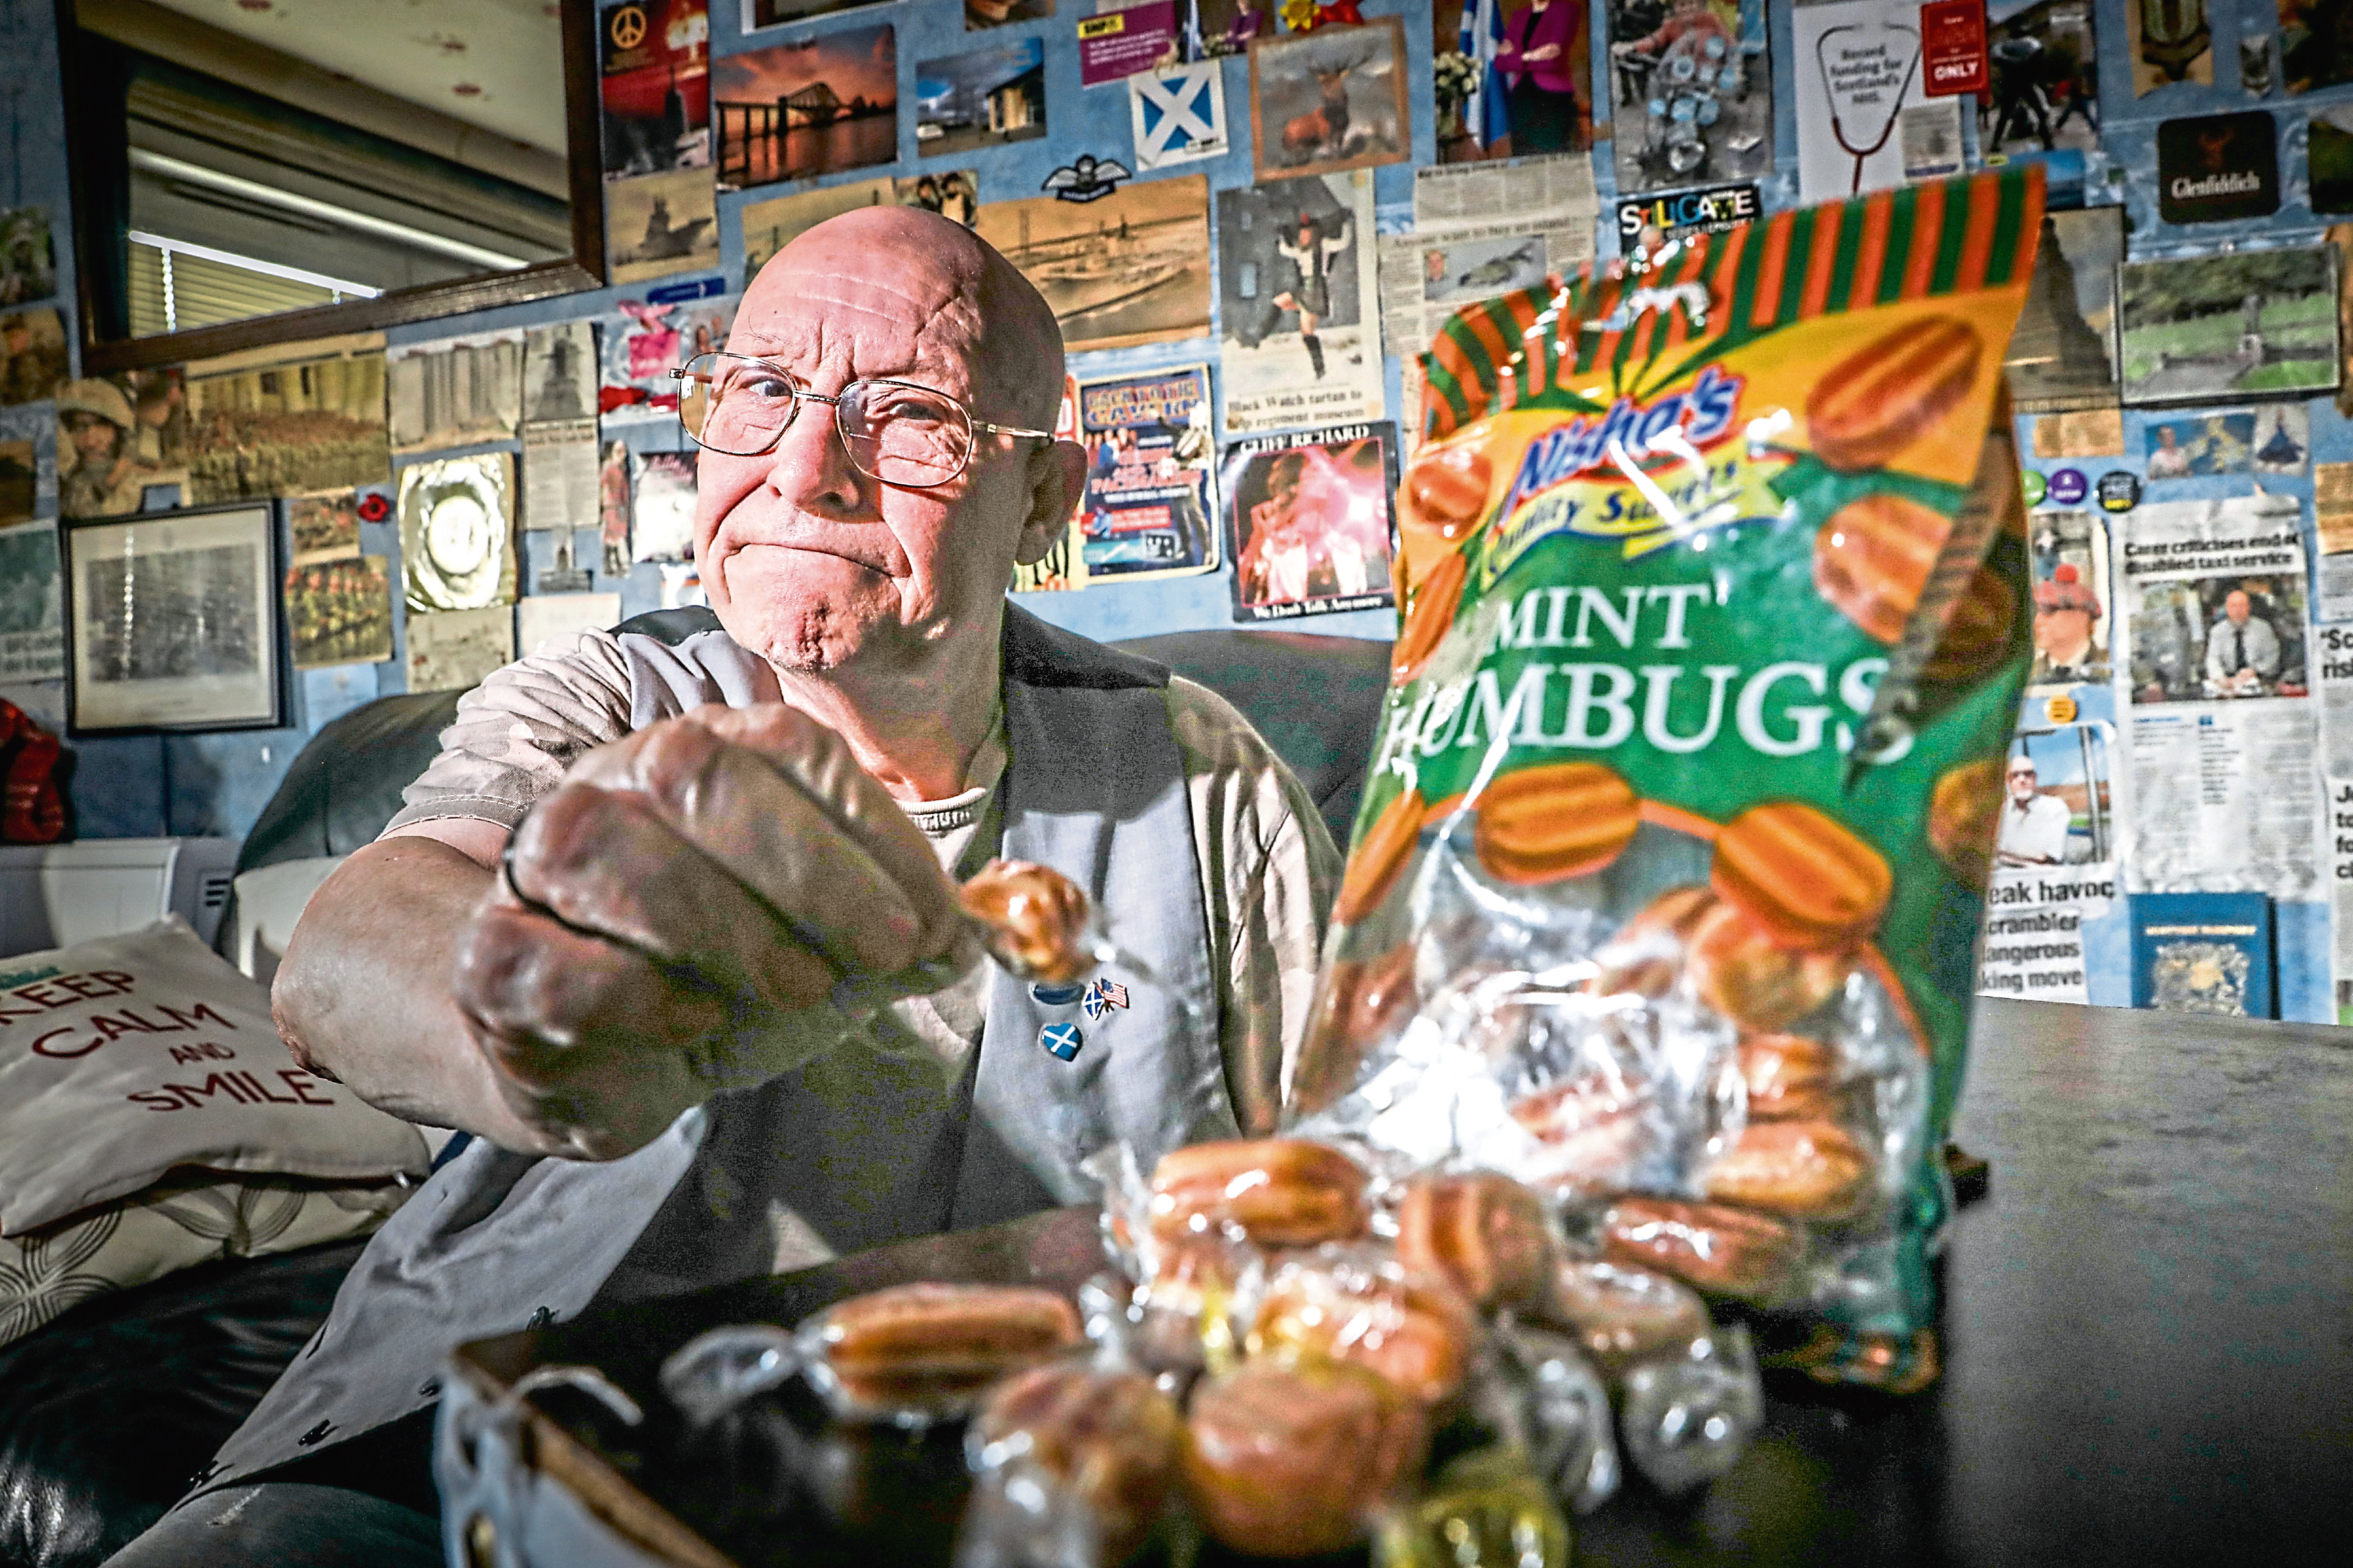 John Bissett, of Ardler, has declared he is boycotting Humbug sweets following the prime minister's remarks at Westminster last week.